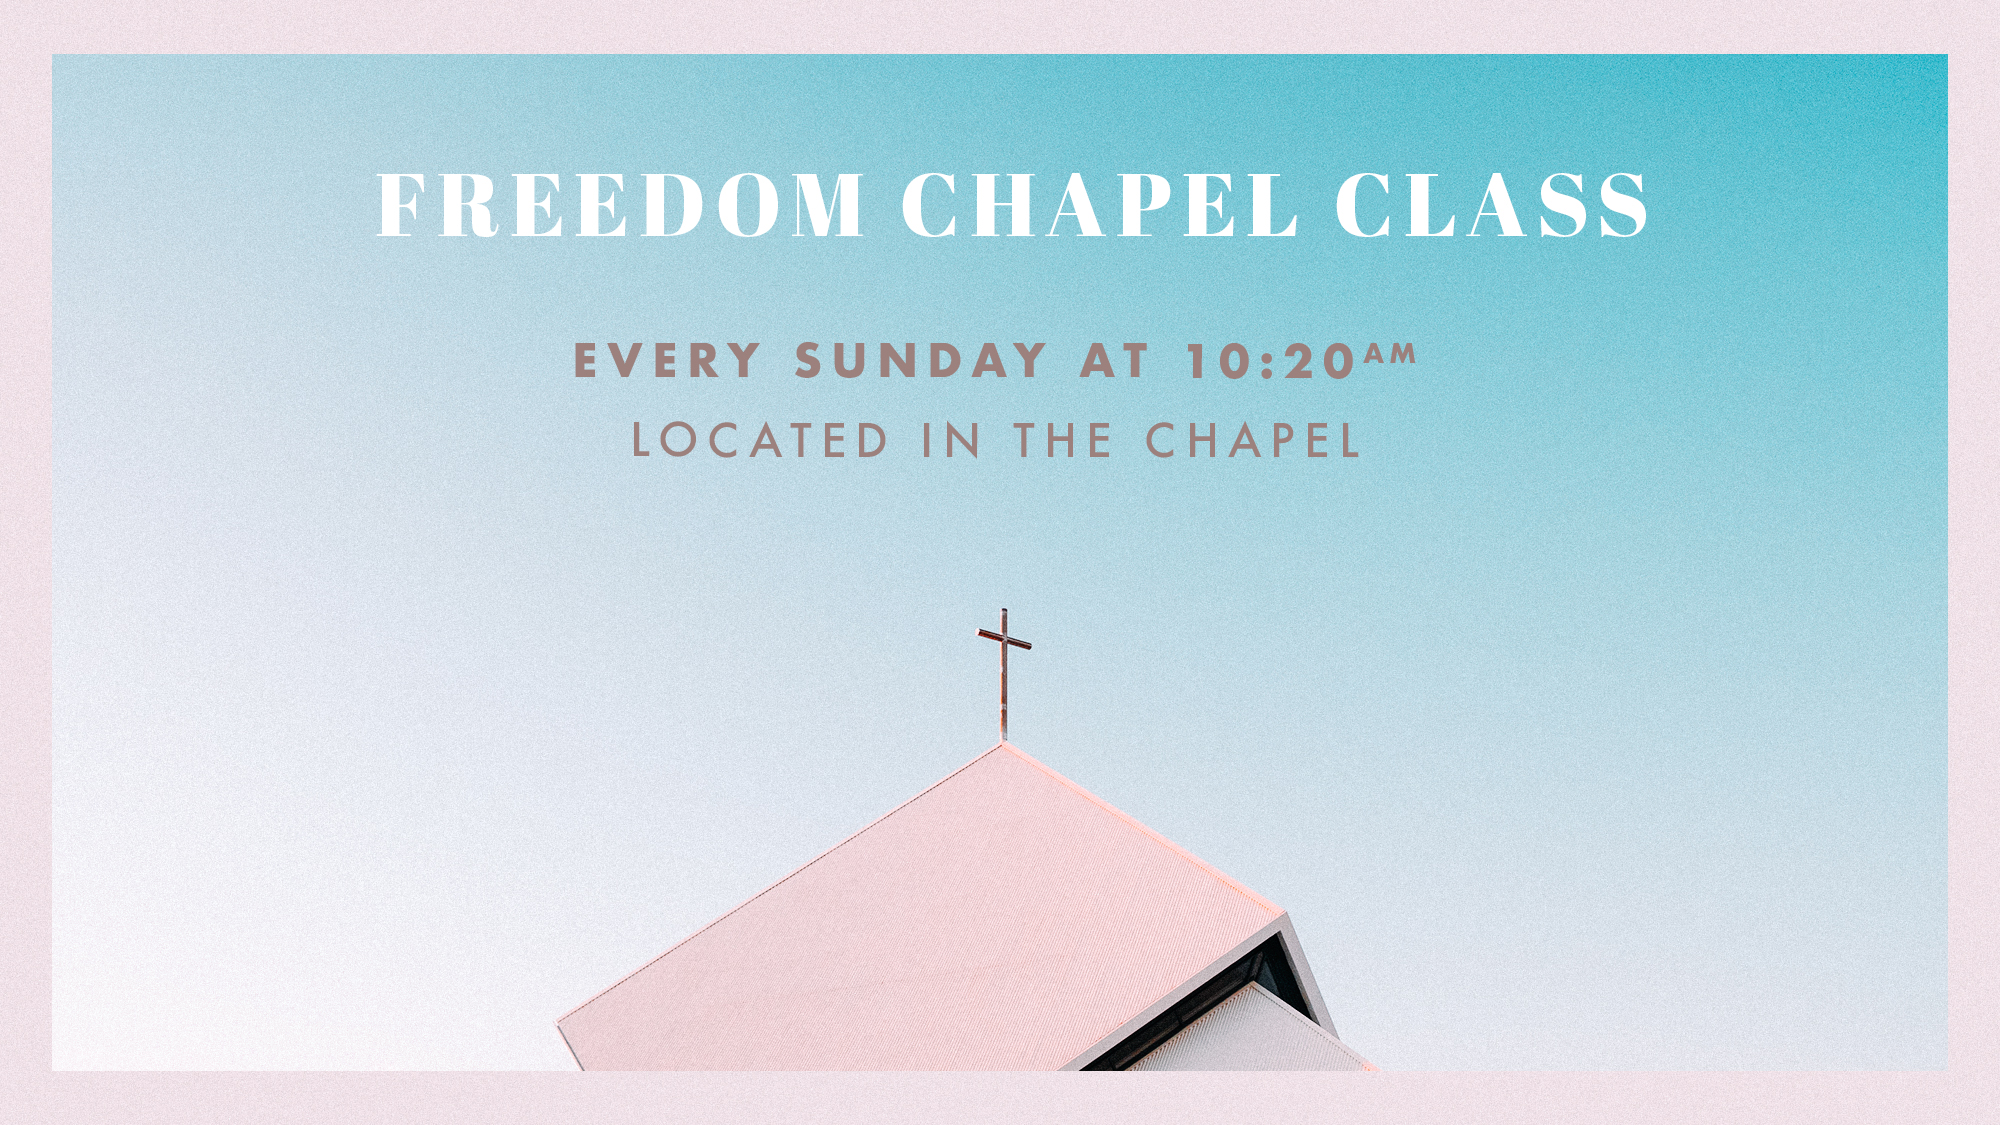 Join Richard and Sandra Shelton in the Chapel, Sunday's at 10:20am for a service with traditional hymns, prayer, and teaching. This is a great time of fellowship and community every Sunday morning.